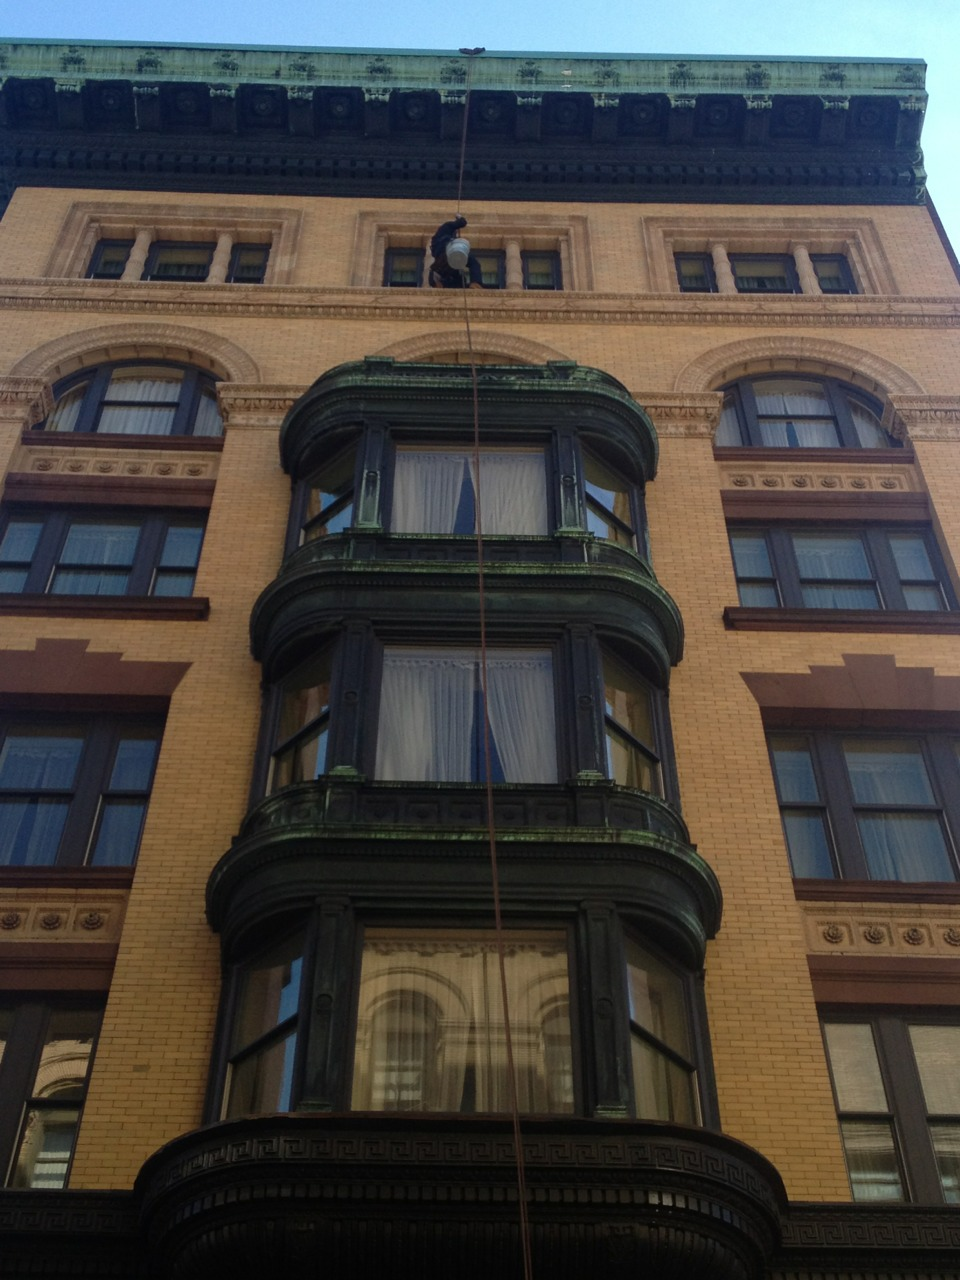 Window washing or urban acrobatics.